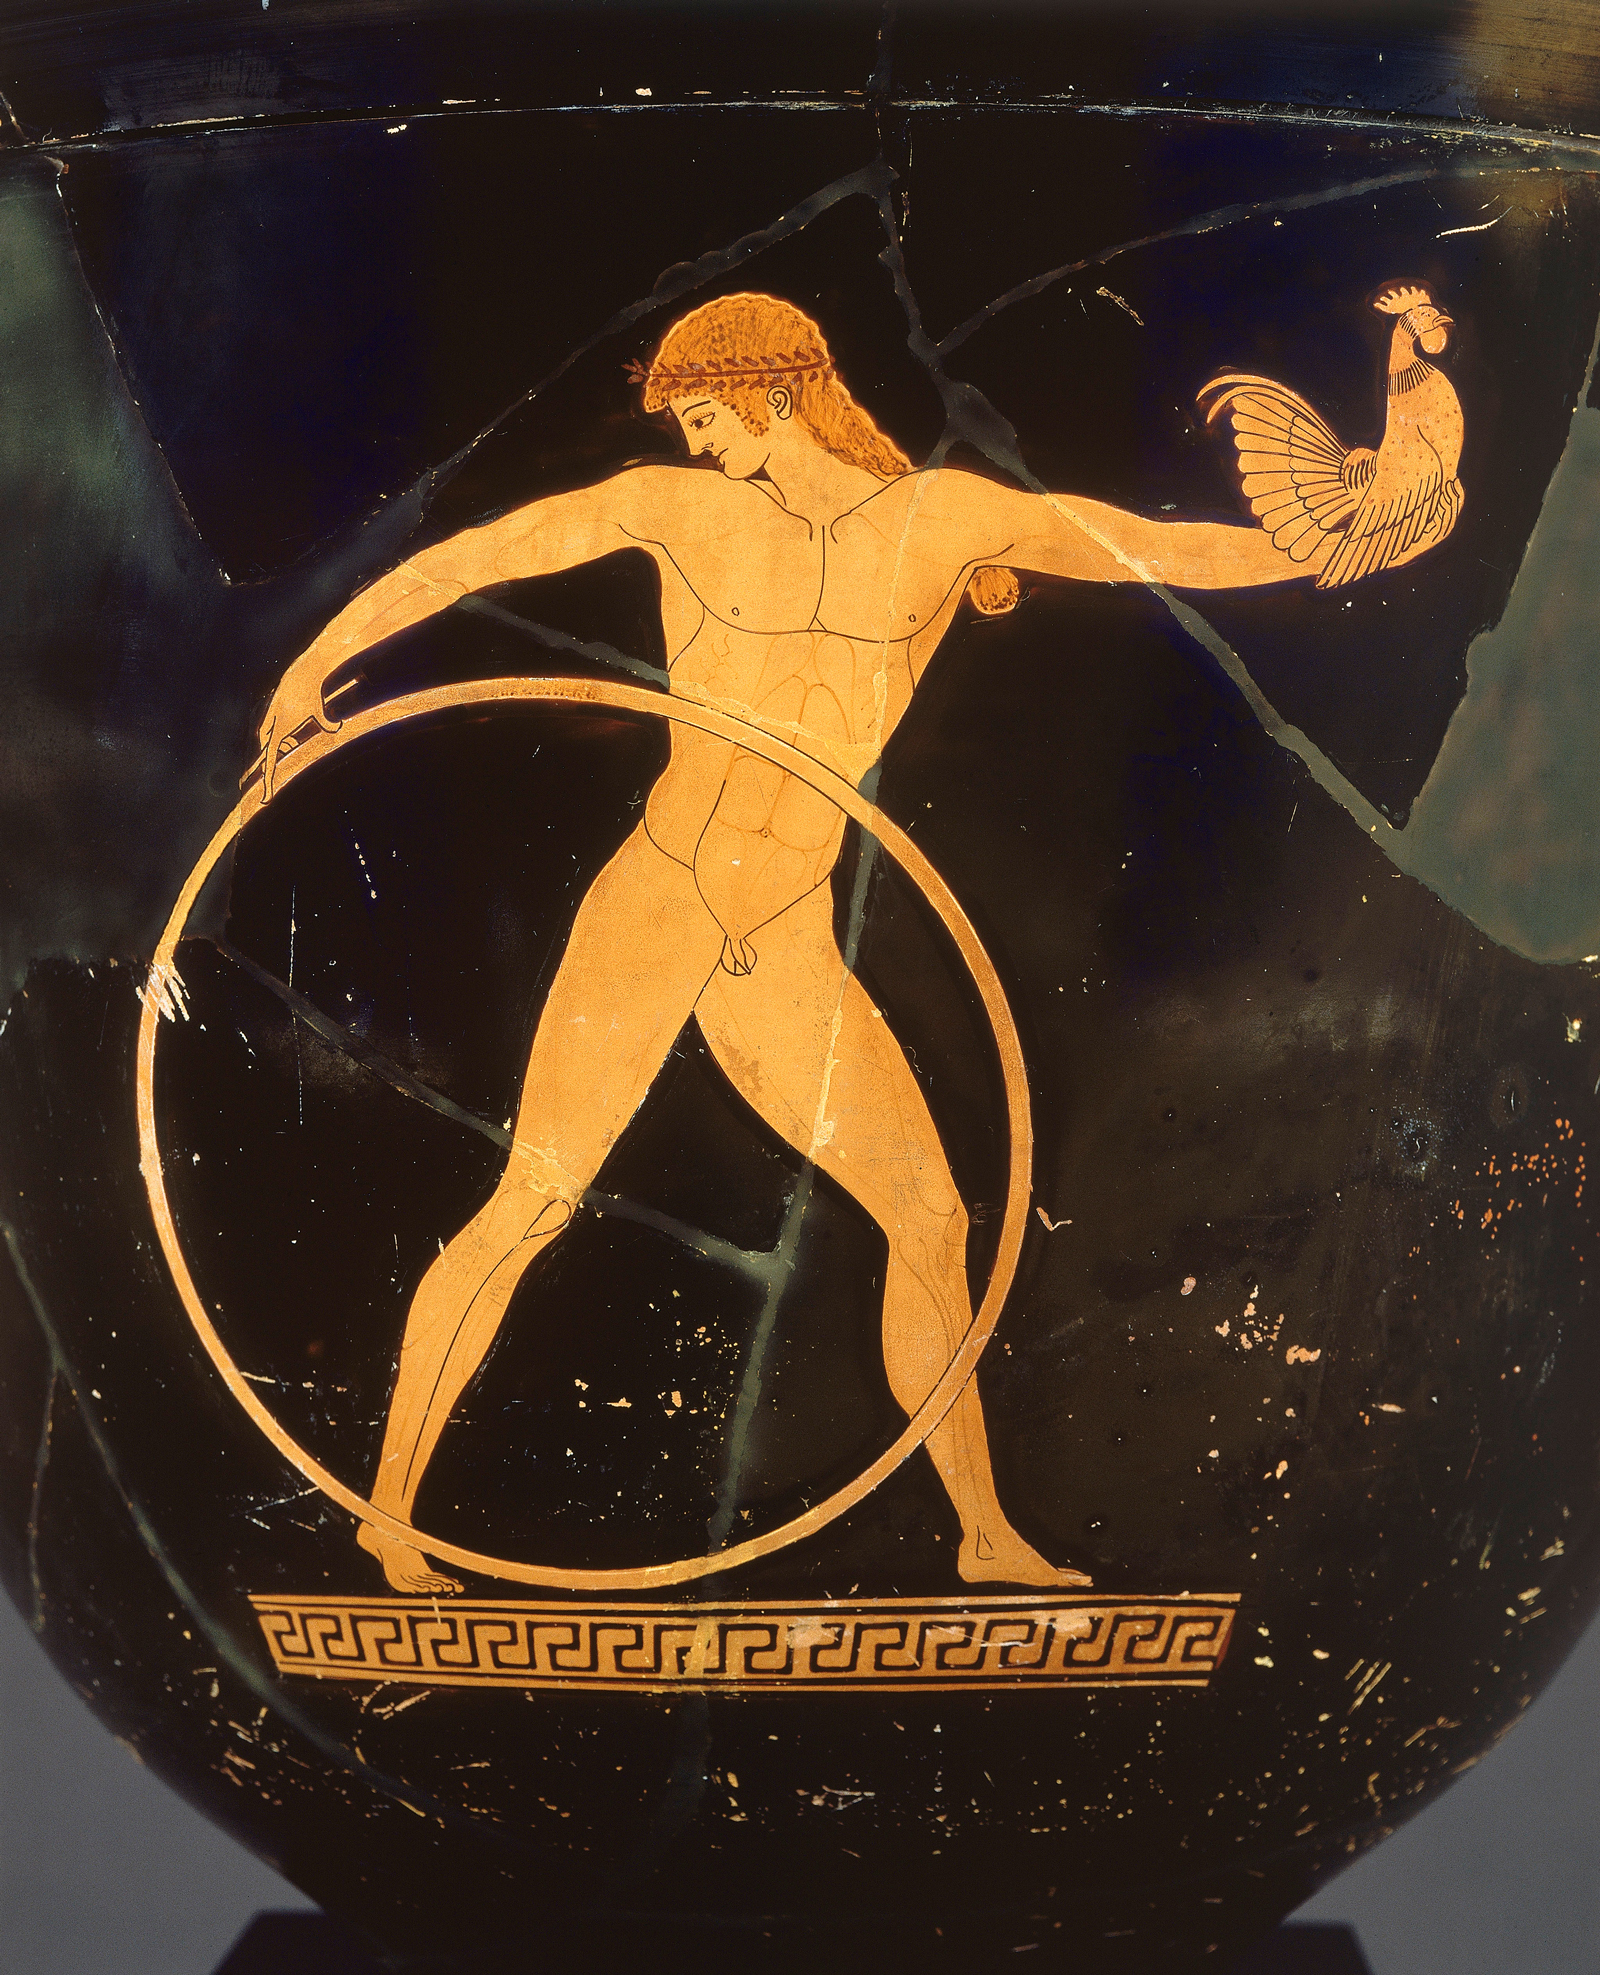 Attributed to the Berlin Painter, c. 500-490 BC, Red-figure bell-krater showing Ganymede, described in the Iliad as the most beautiful of mortal men (Musée du Louvre/RMN-Grand Palais/Art Resource)